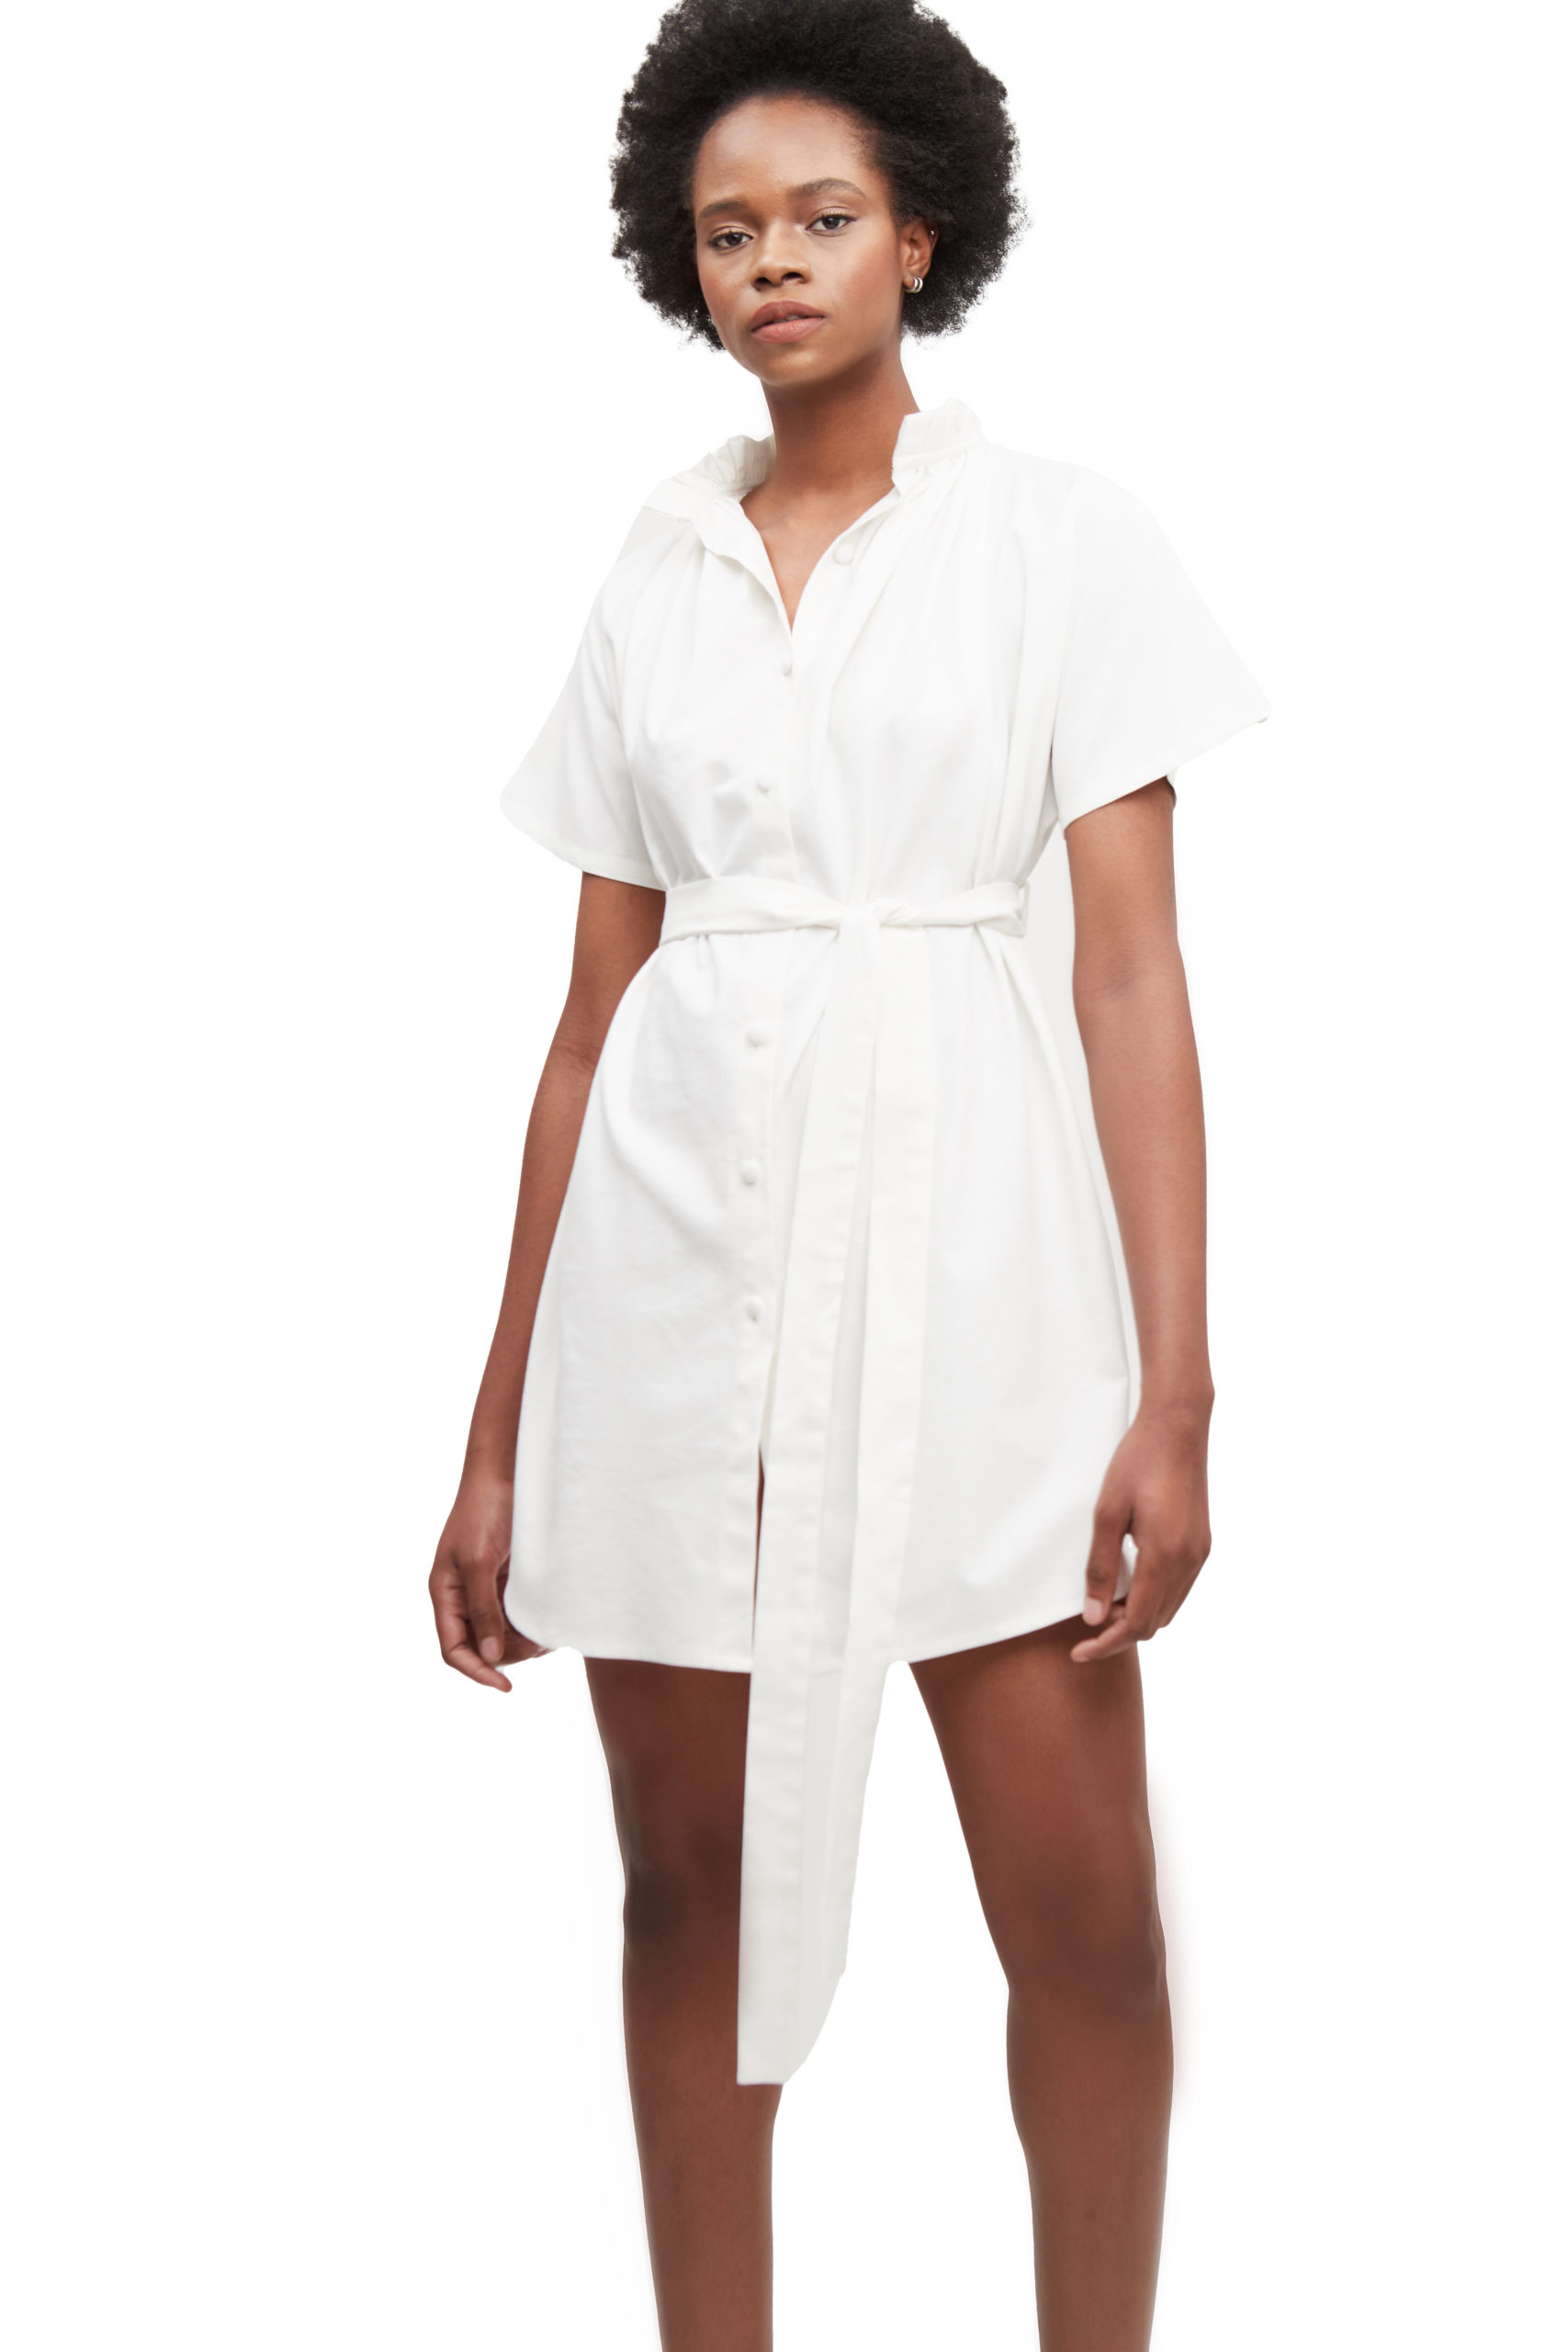 The Miles Dress in Ivory - Atelier Patty Ang